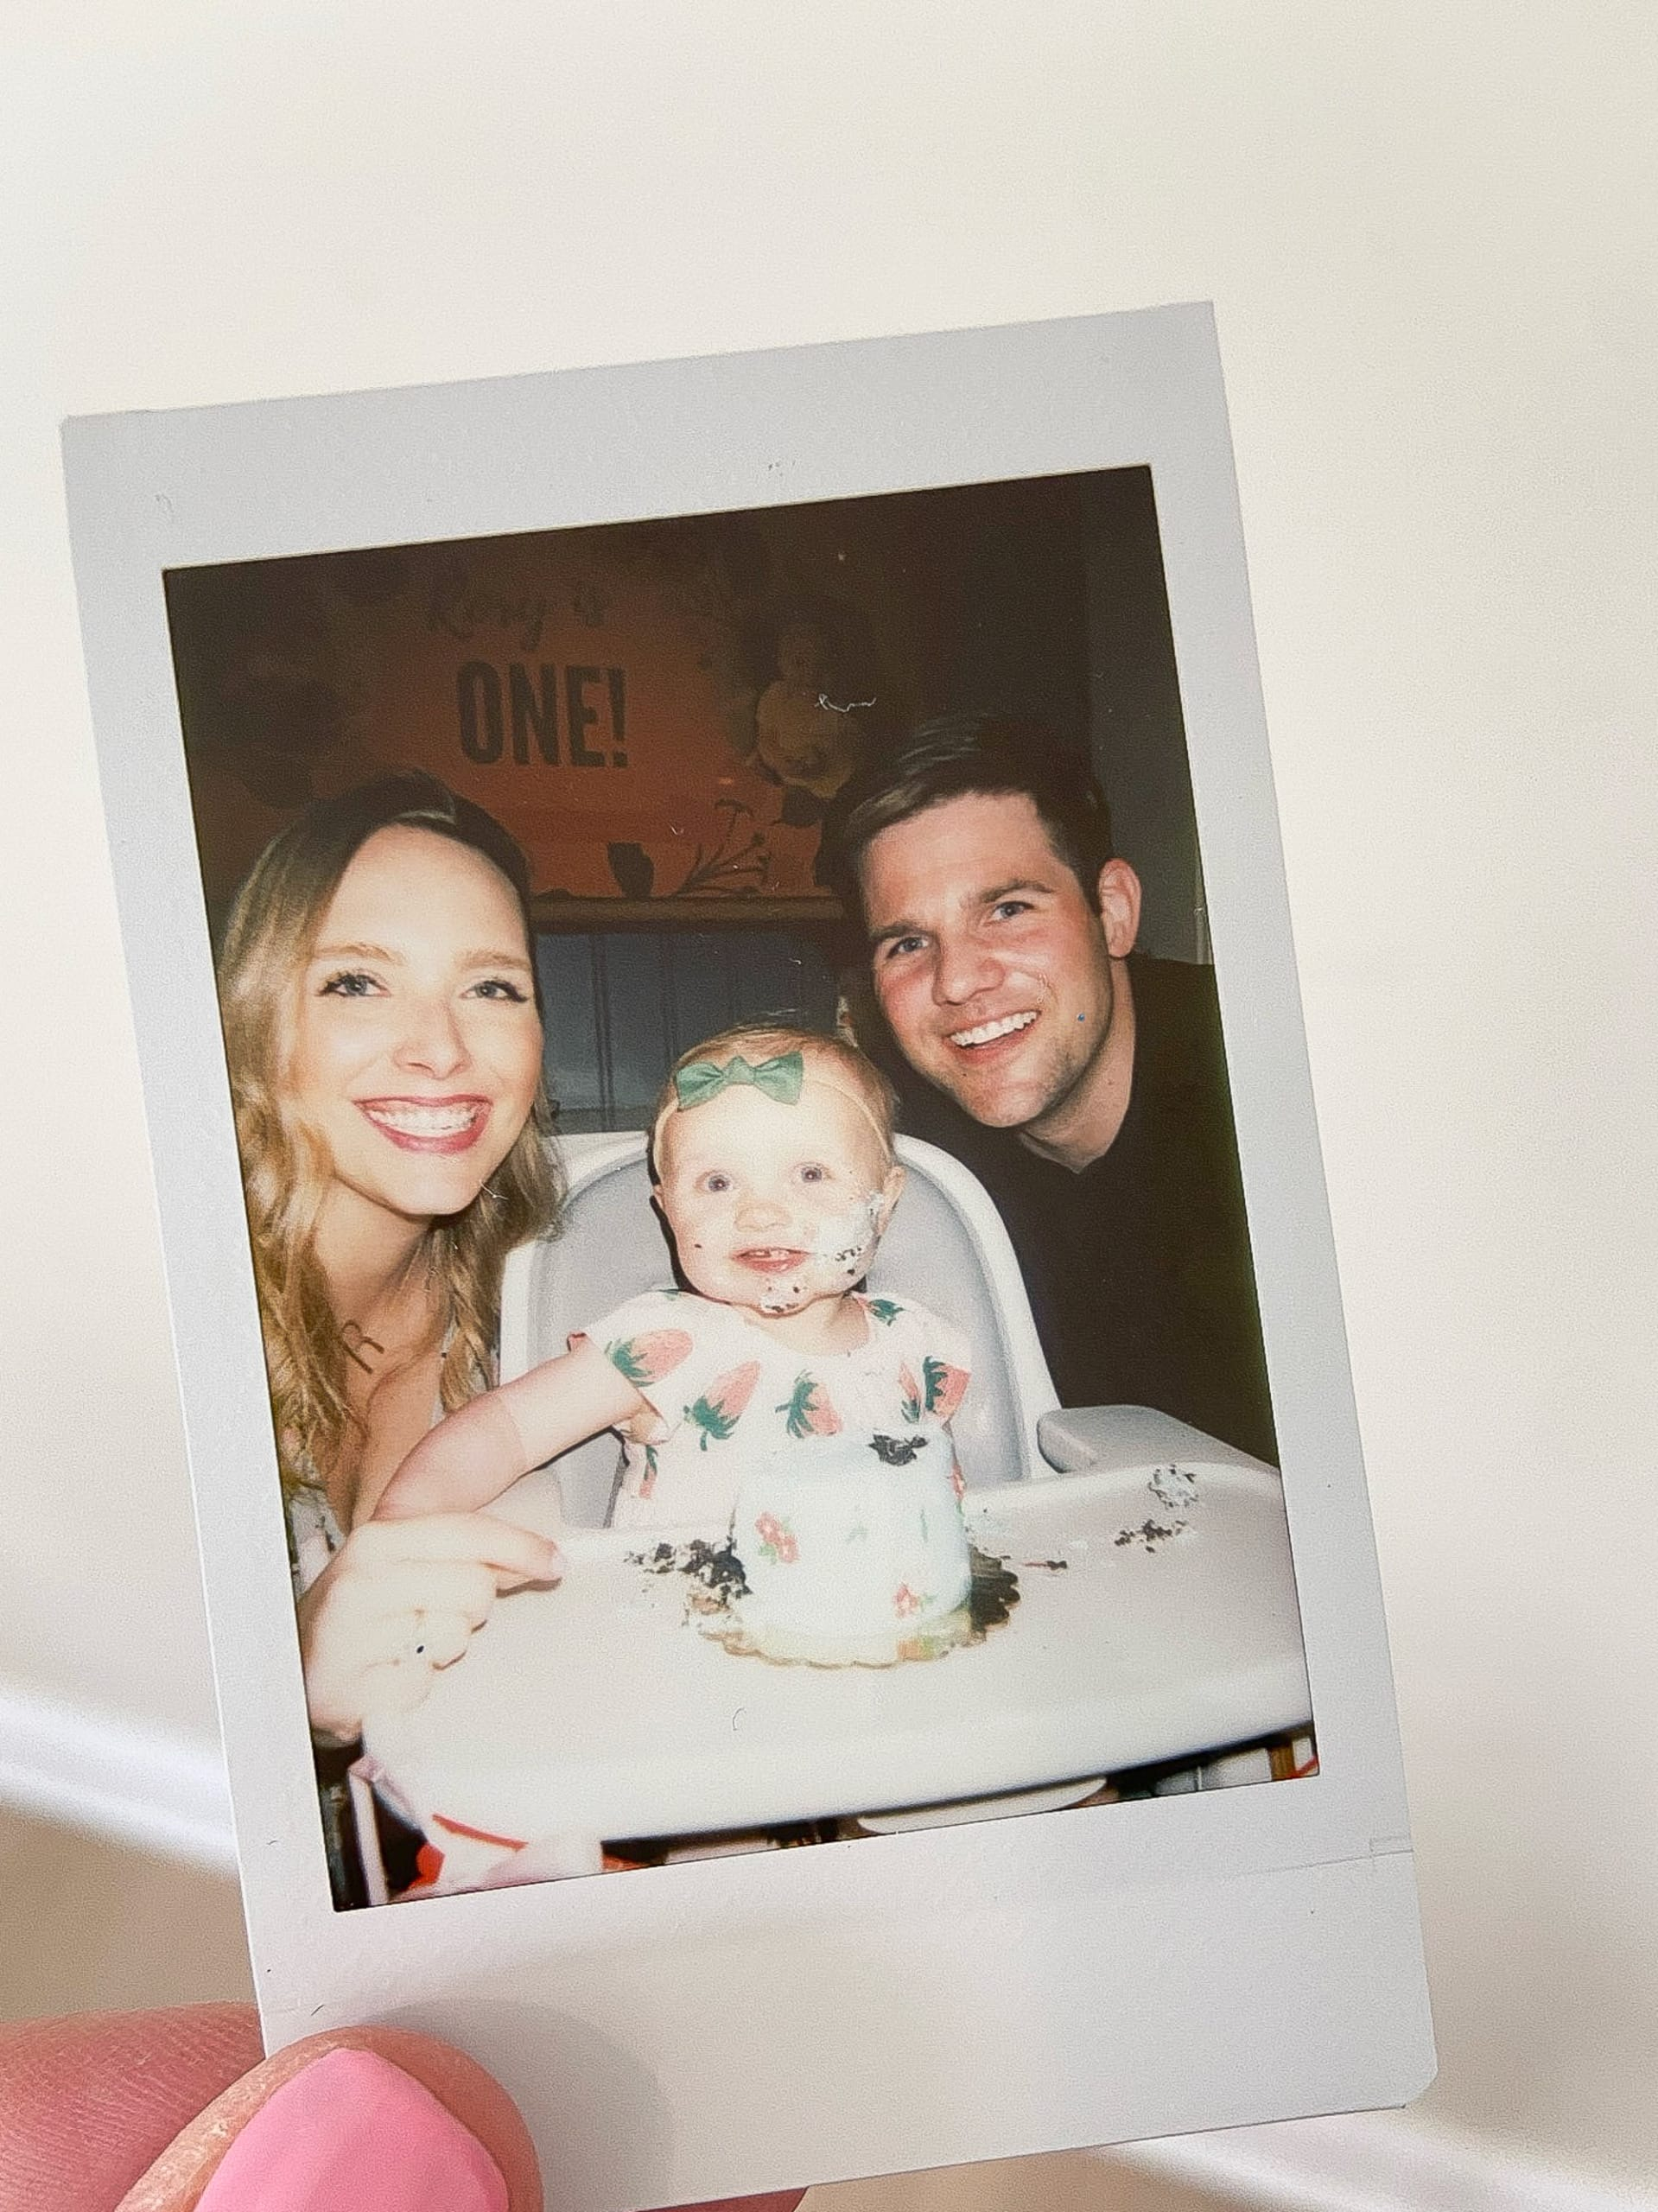 Special day for our baby girl